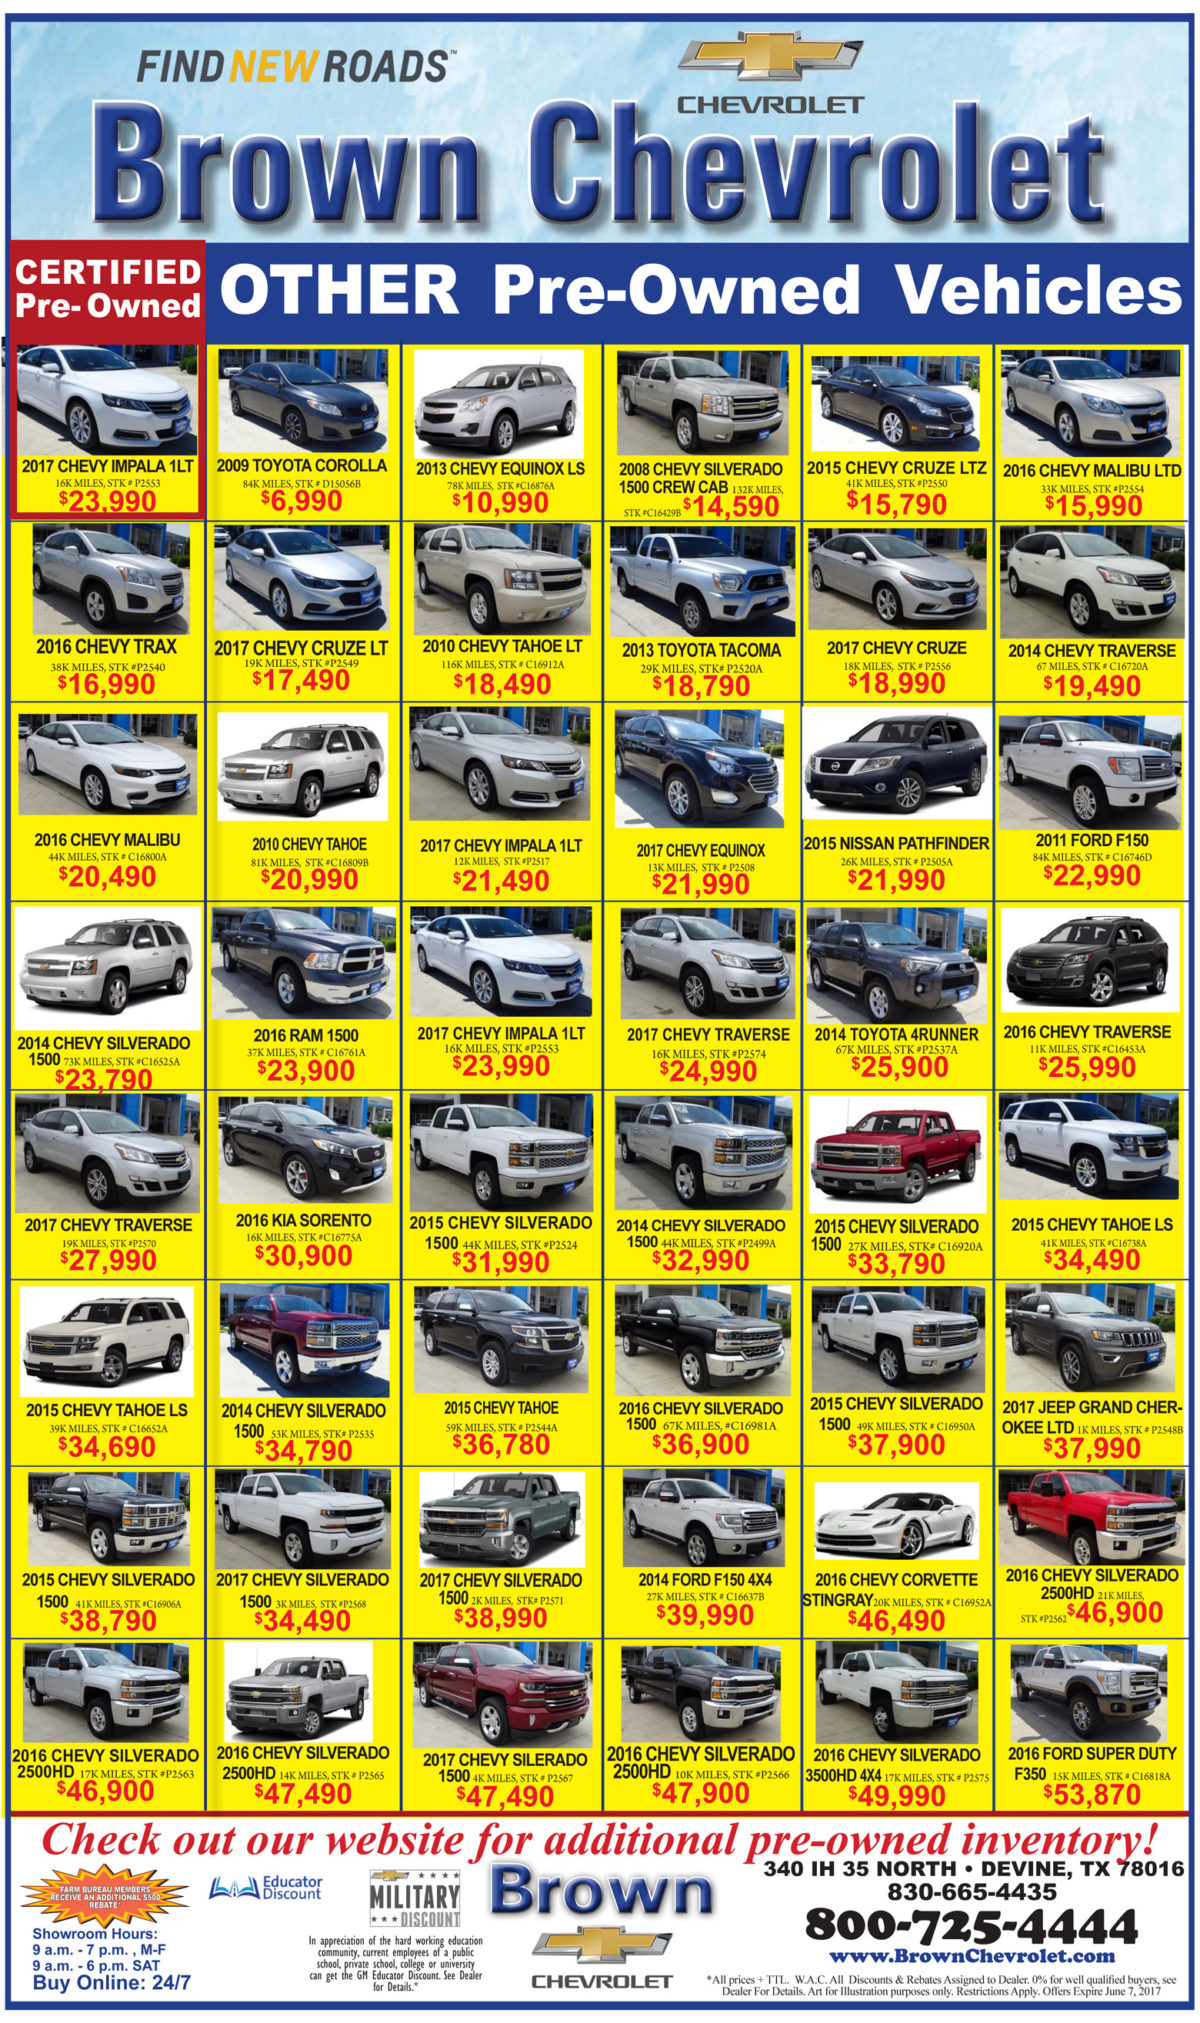 Brown Chevrolet deals for the week of 5-31-17